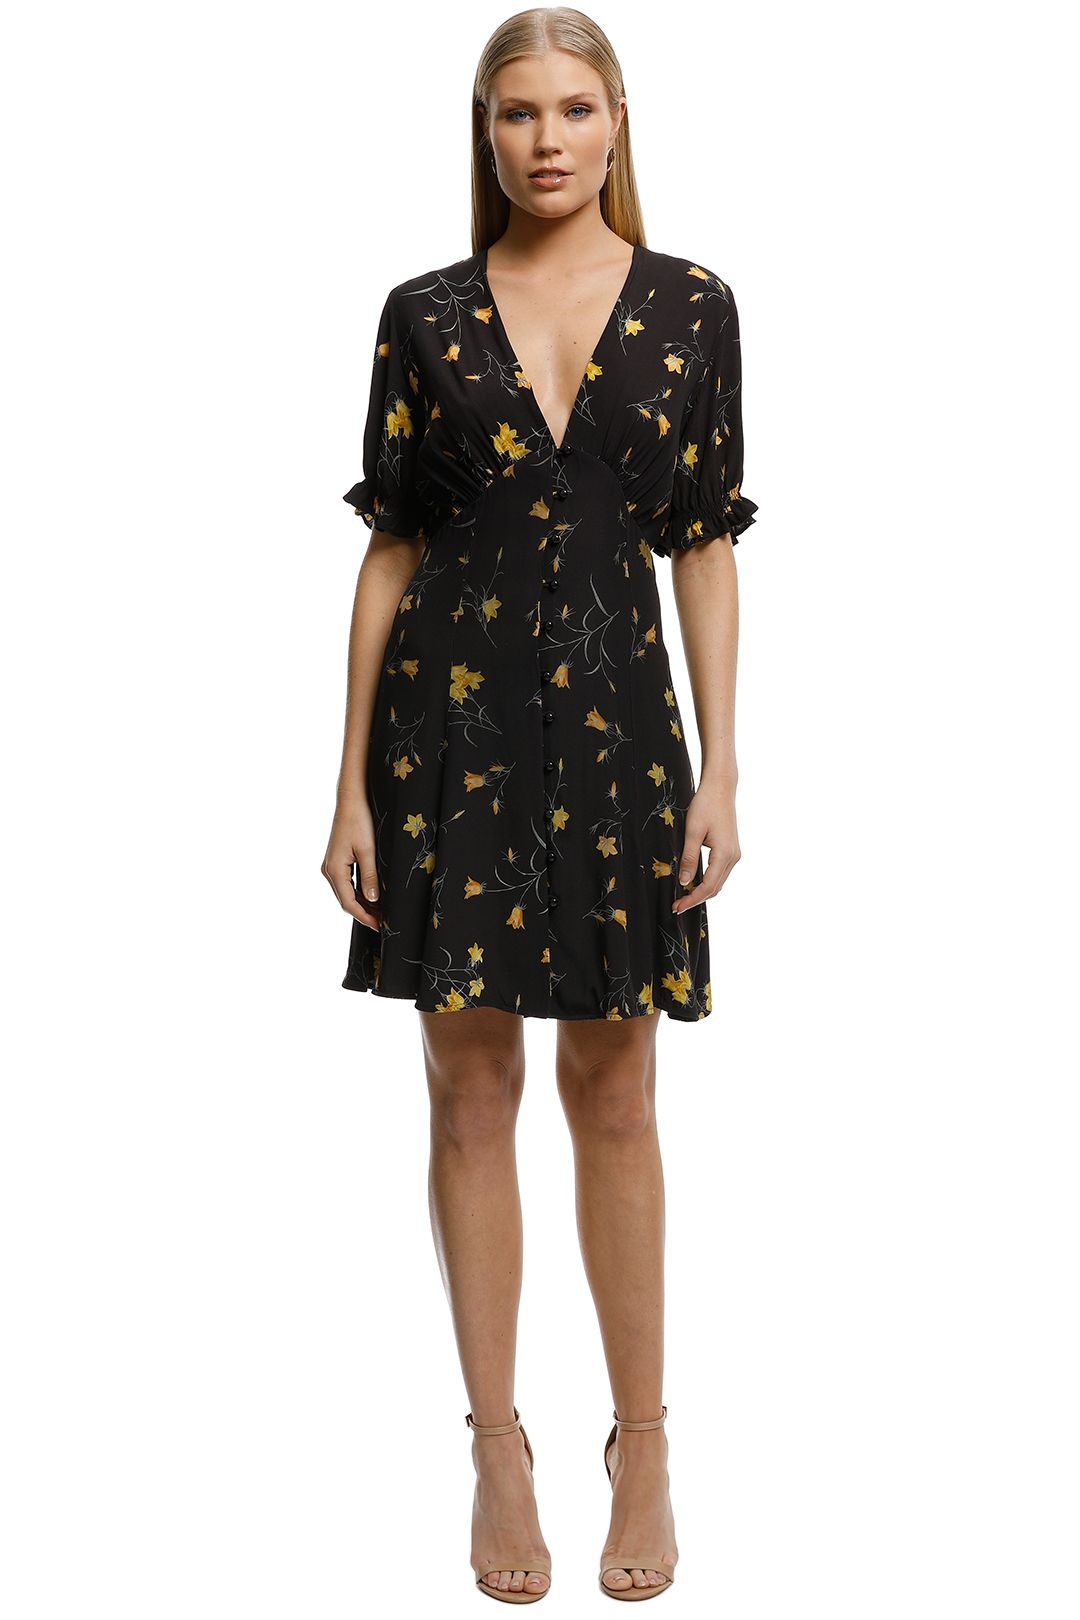 Lover-Forget Me Not Mini Dress-Black-Front